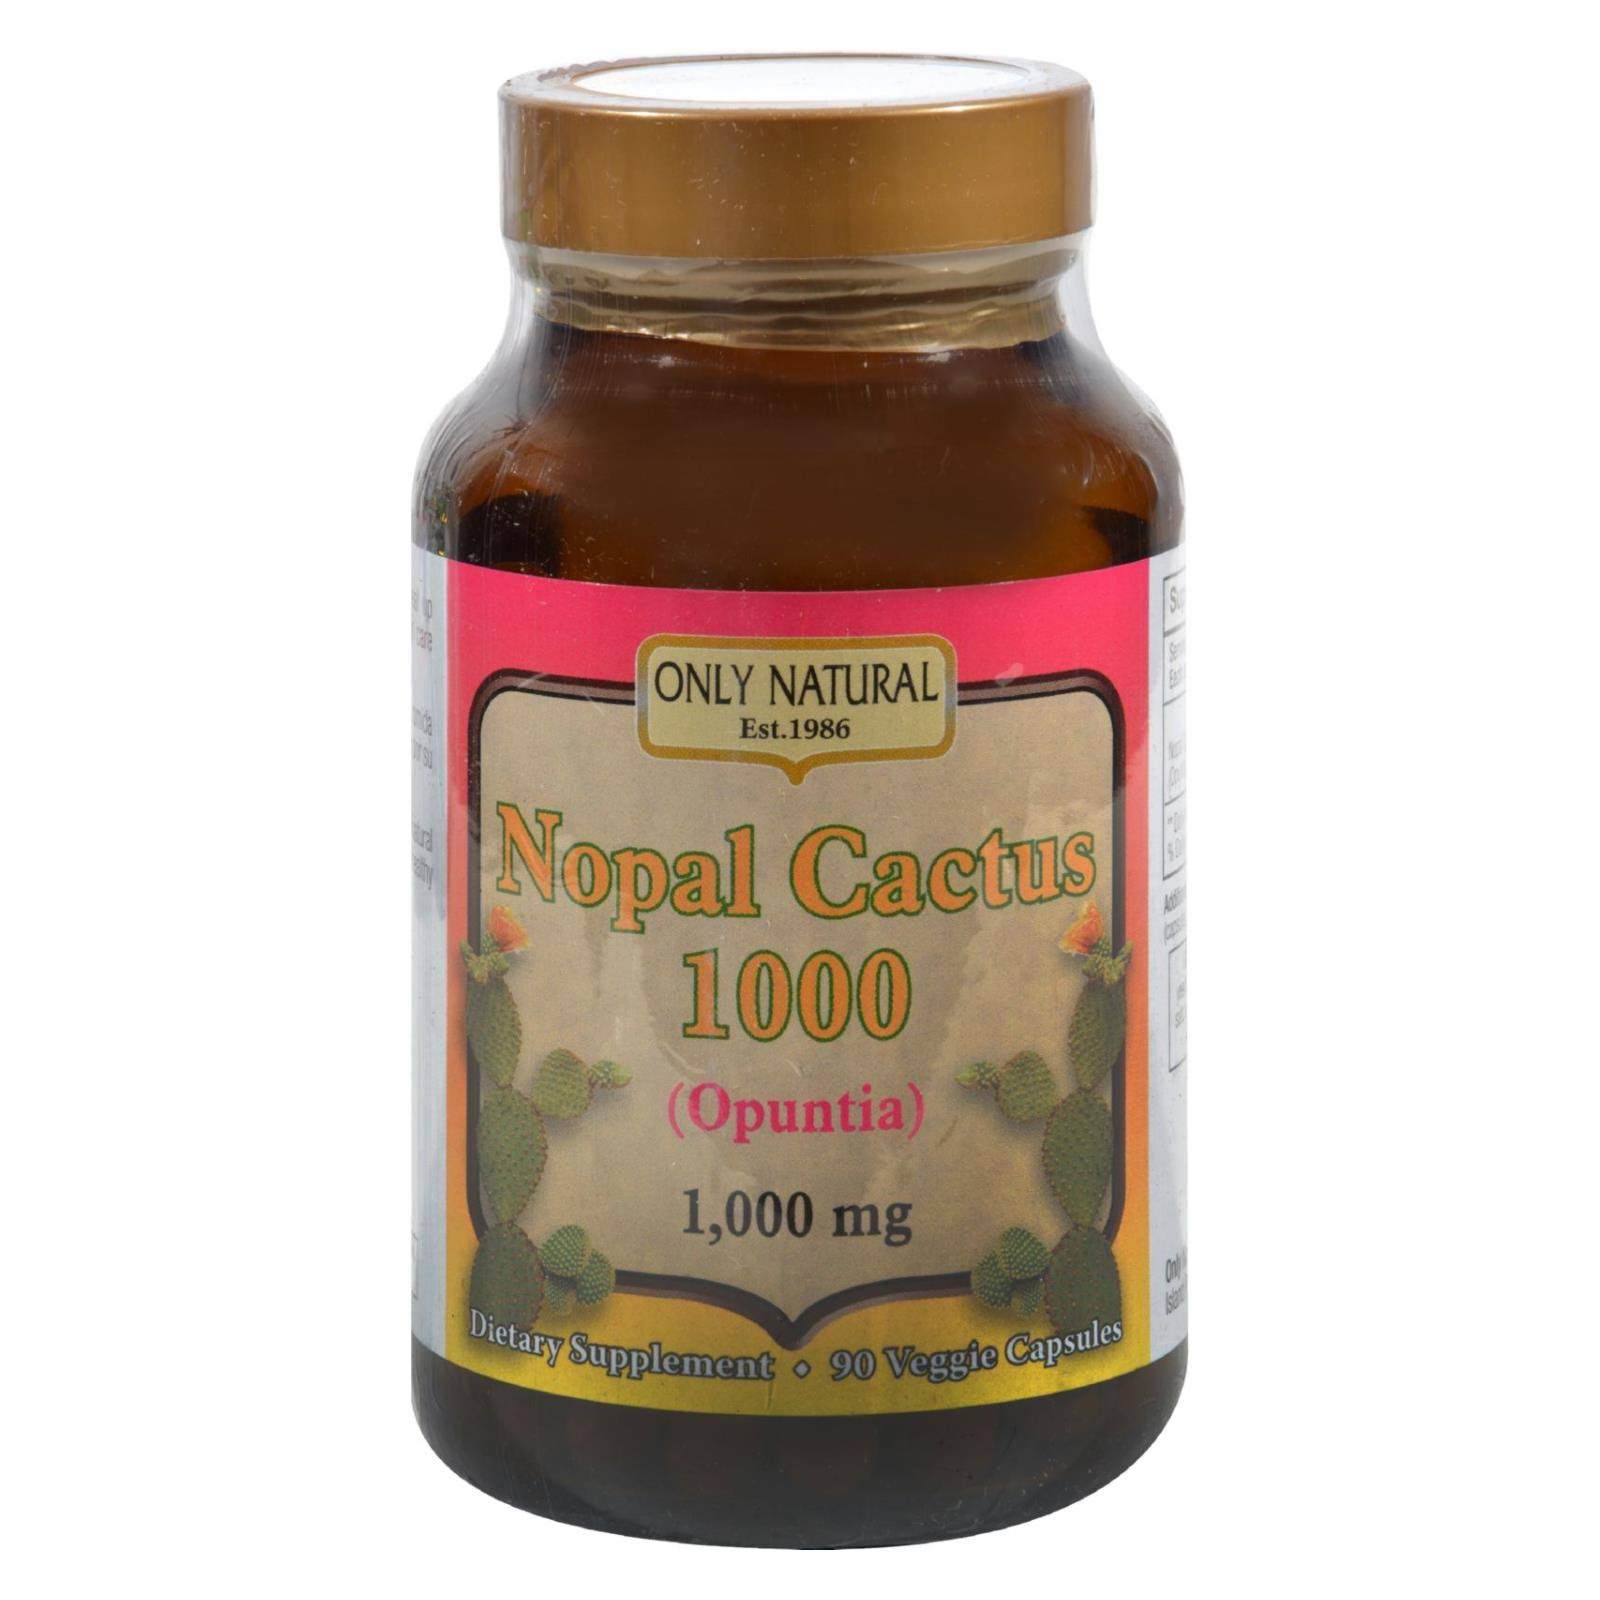 Only Natural Nopal Cactus Veggie Capsules Supplement - 1000mg, 90ct